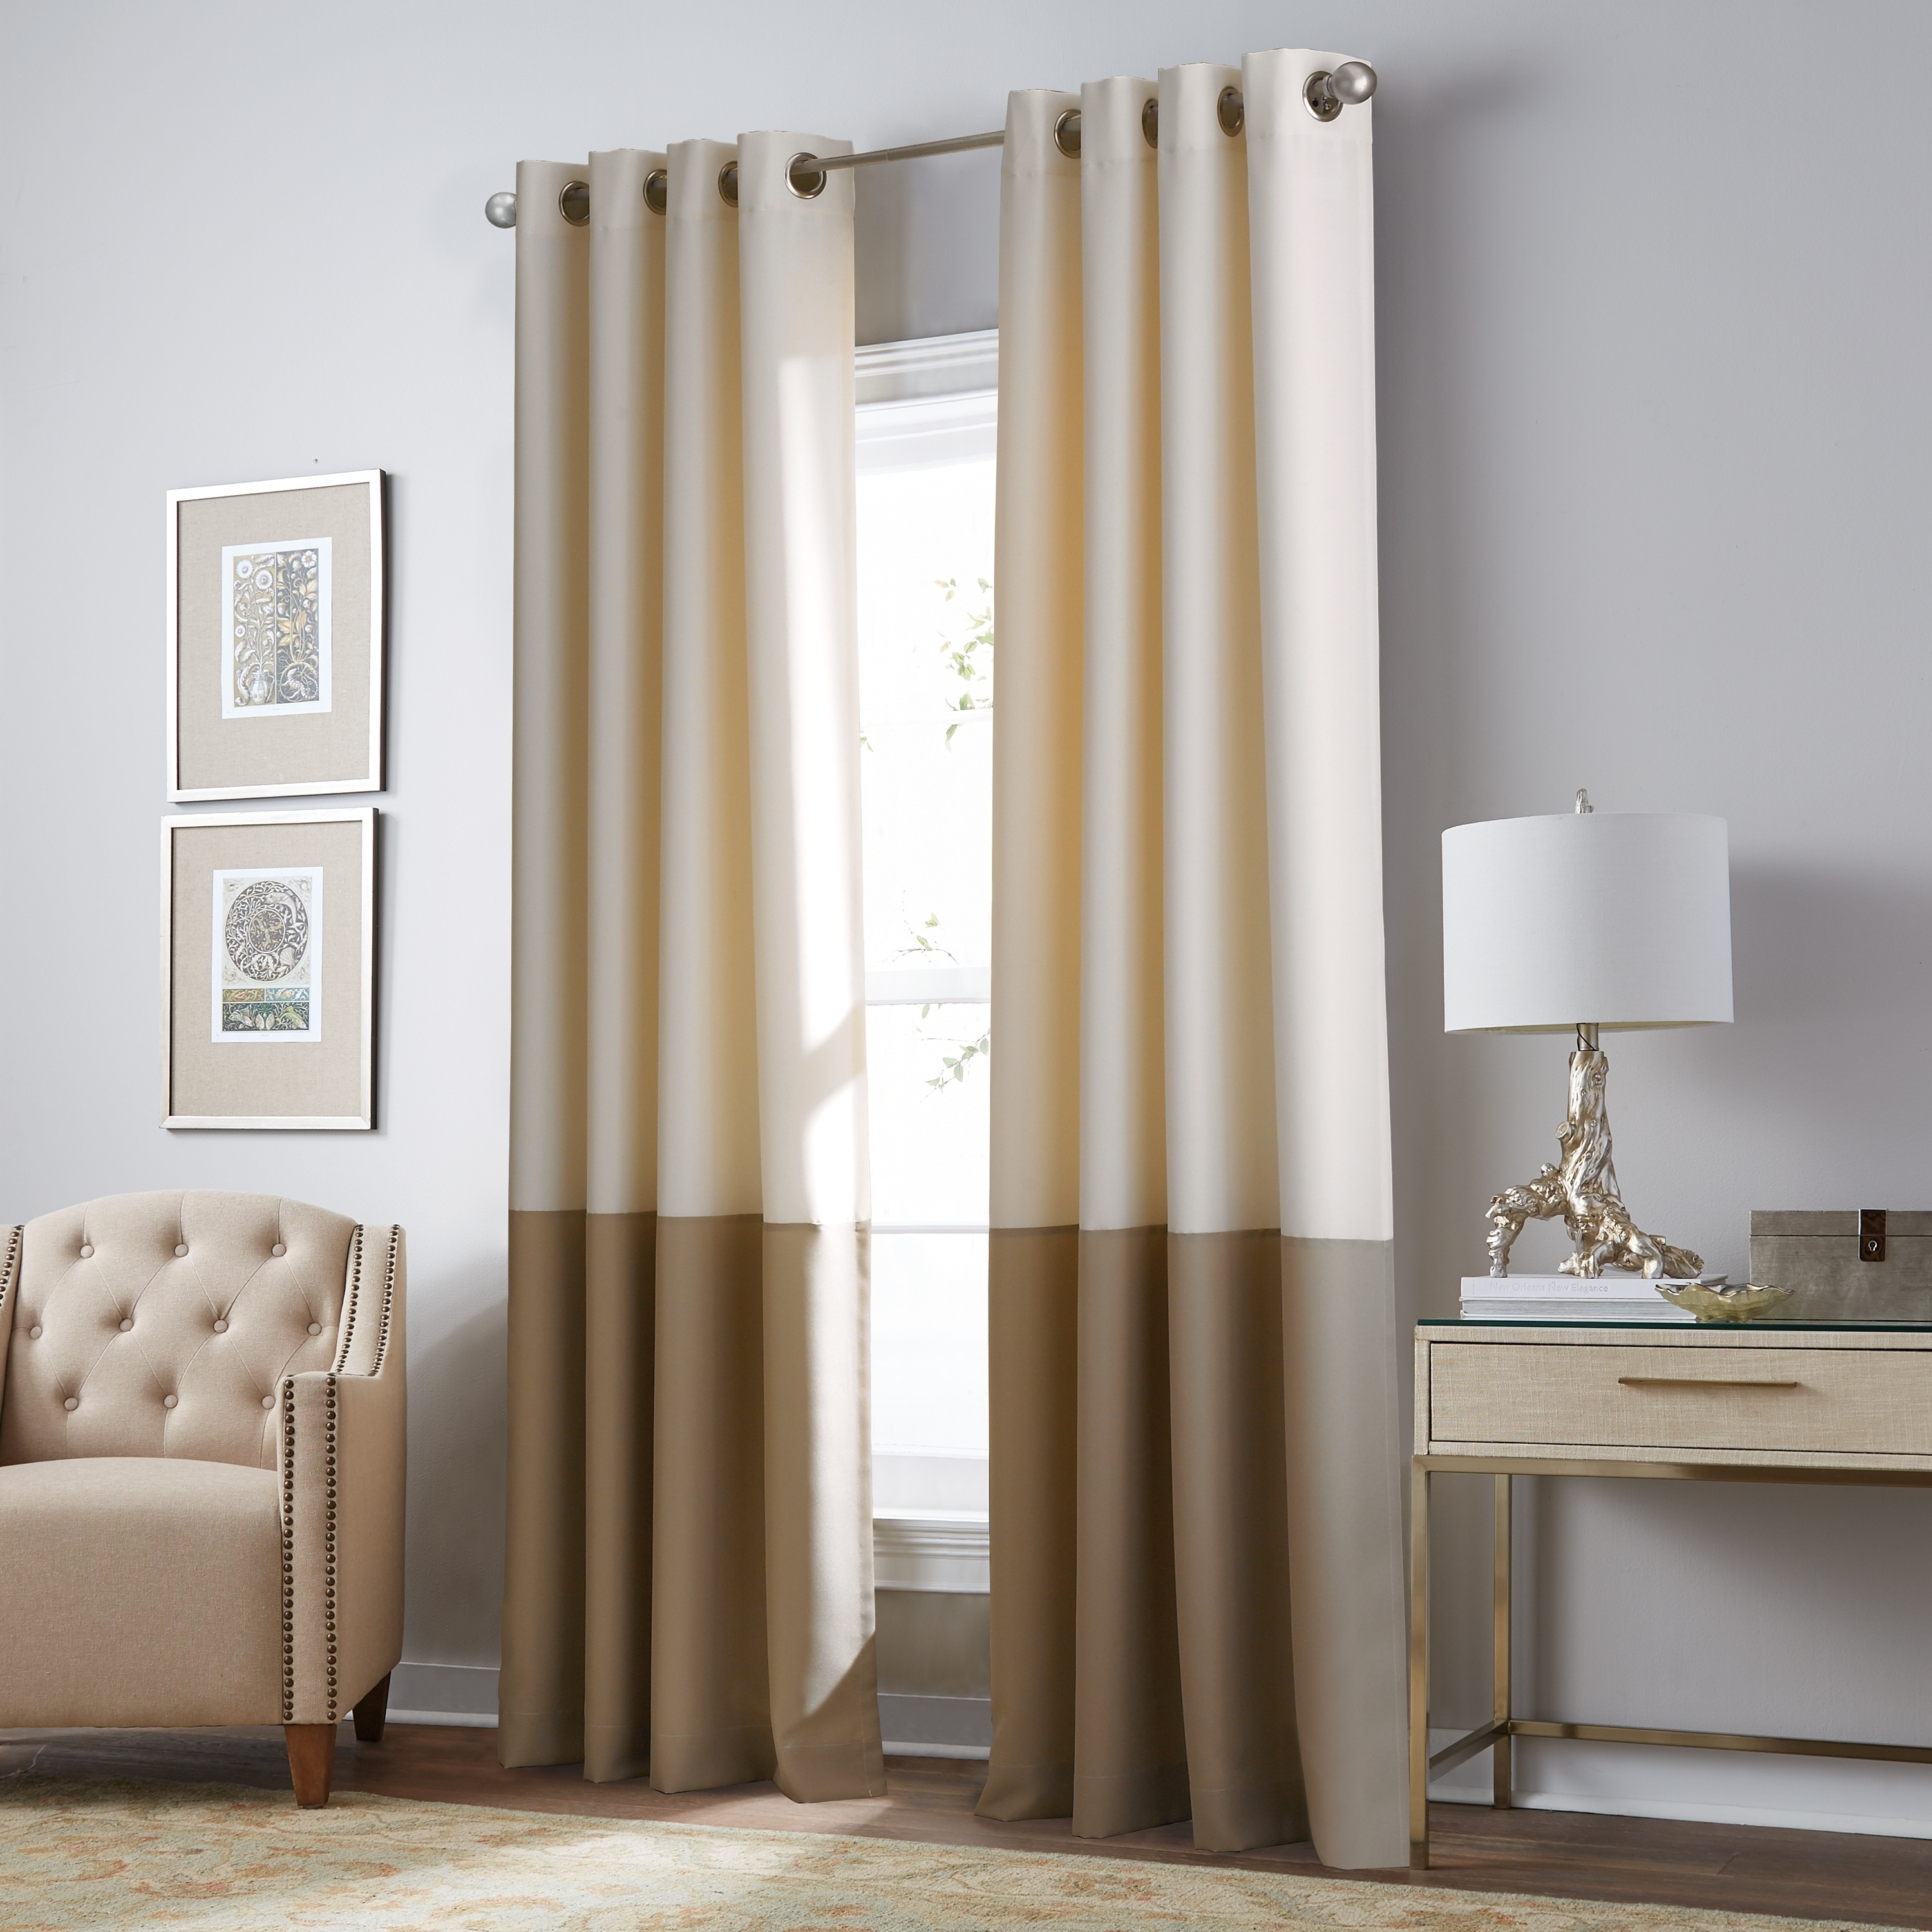 Kendall Blackout Color Block Grommet Curtain Panel (Cream/Black - 63 Inches)